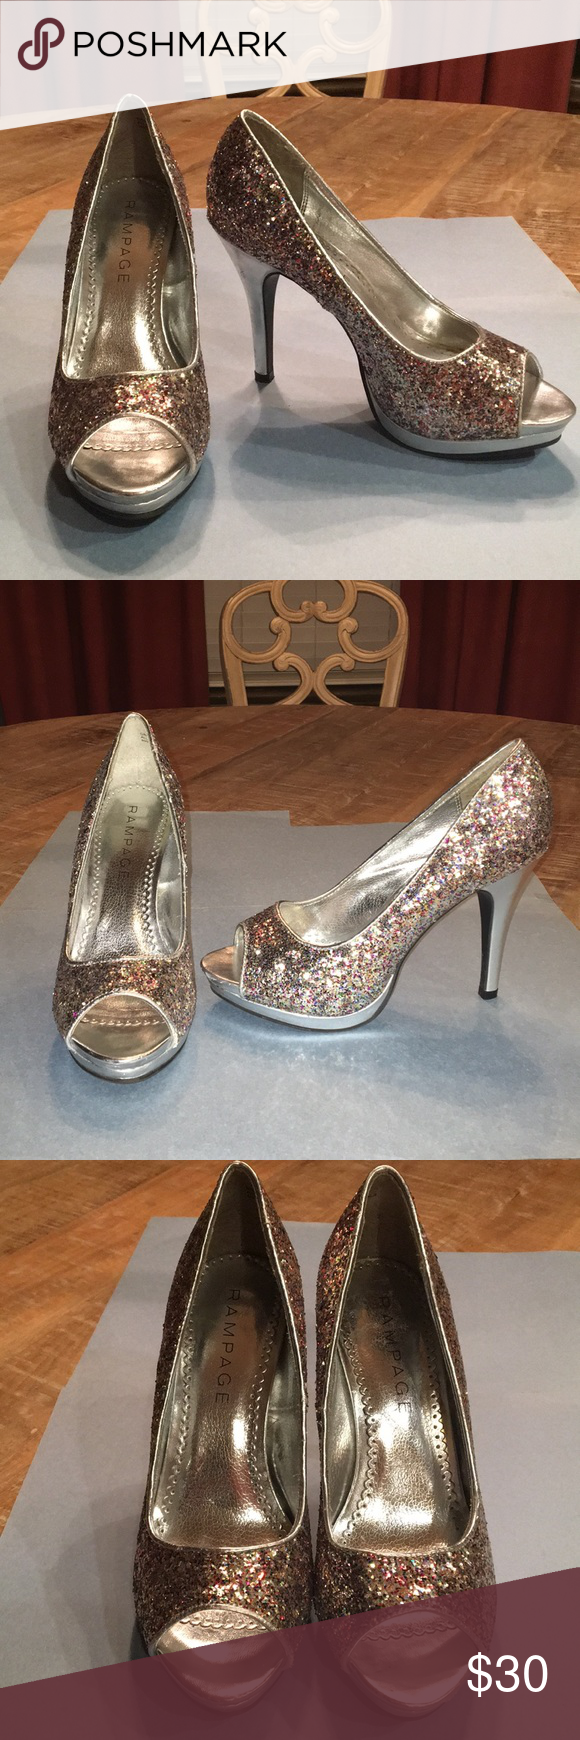 Glittery dressy heels silver and iridescent brand name these